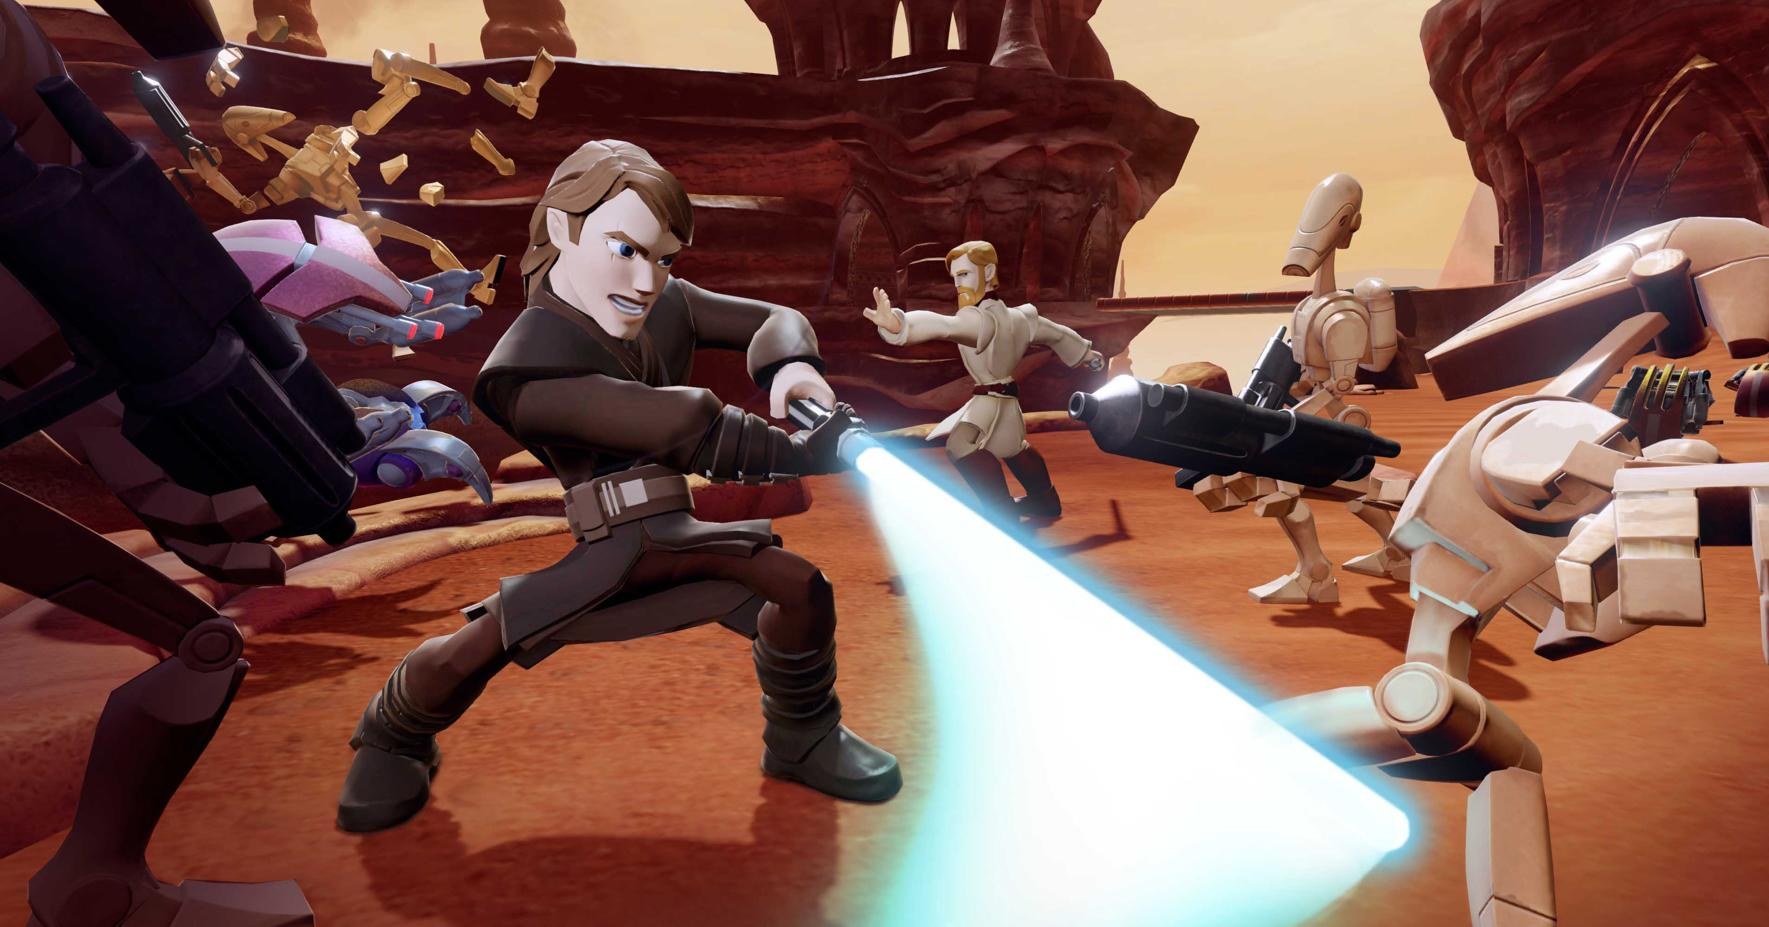 Review: 'Star Wars' toy rush begins with 'Disney Infinity'